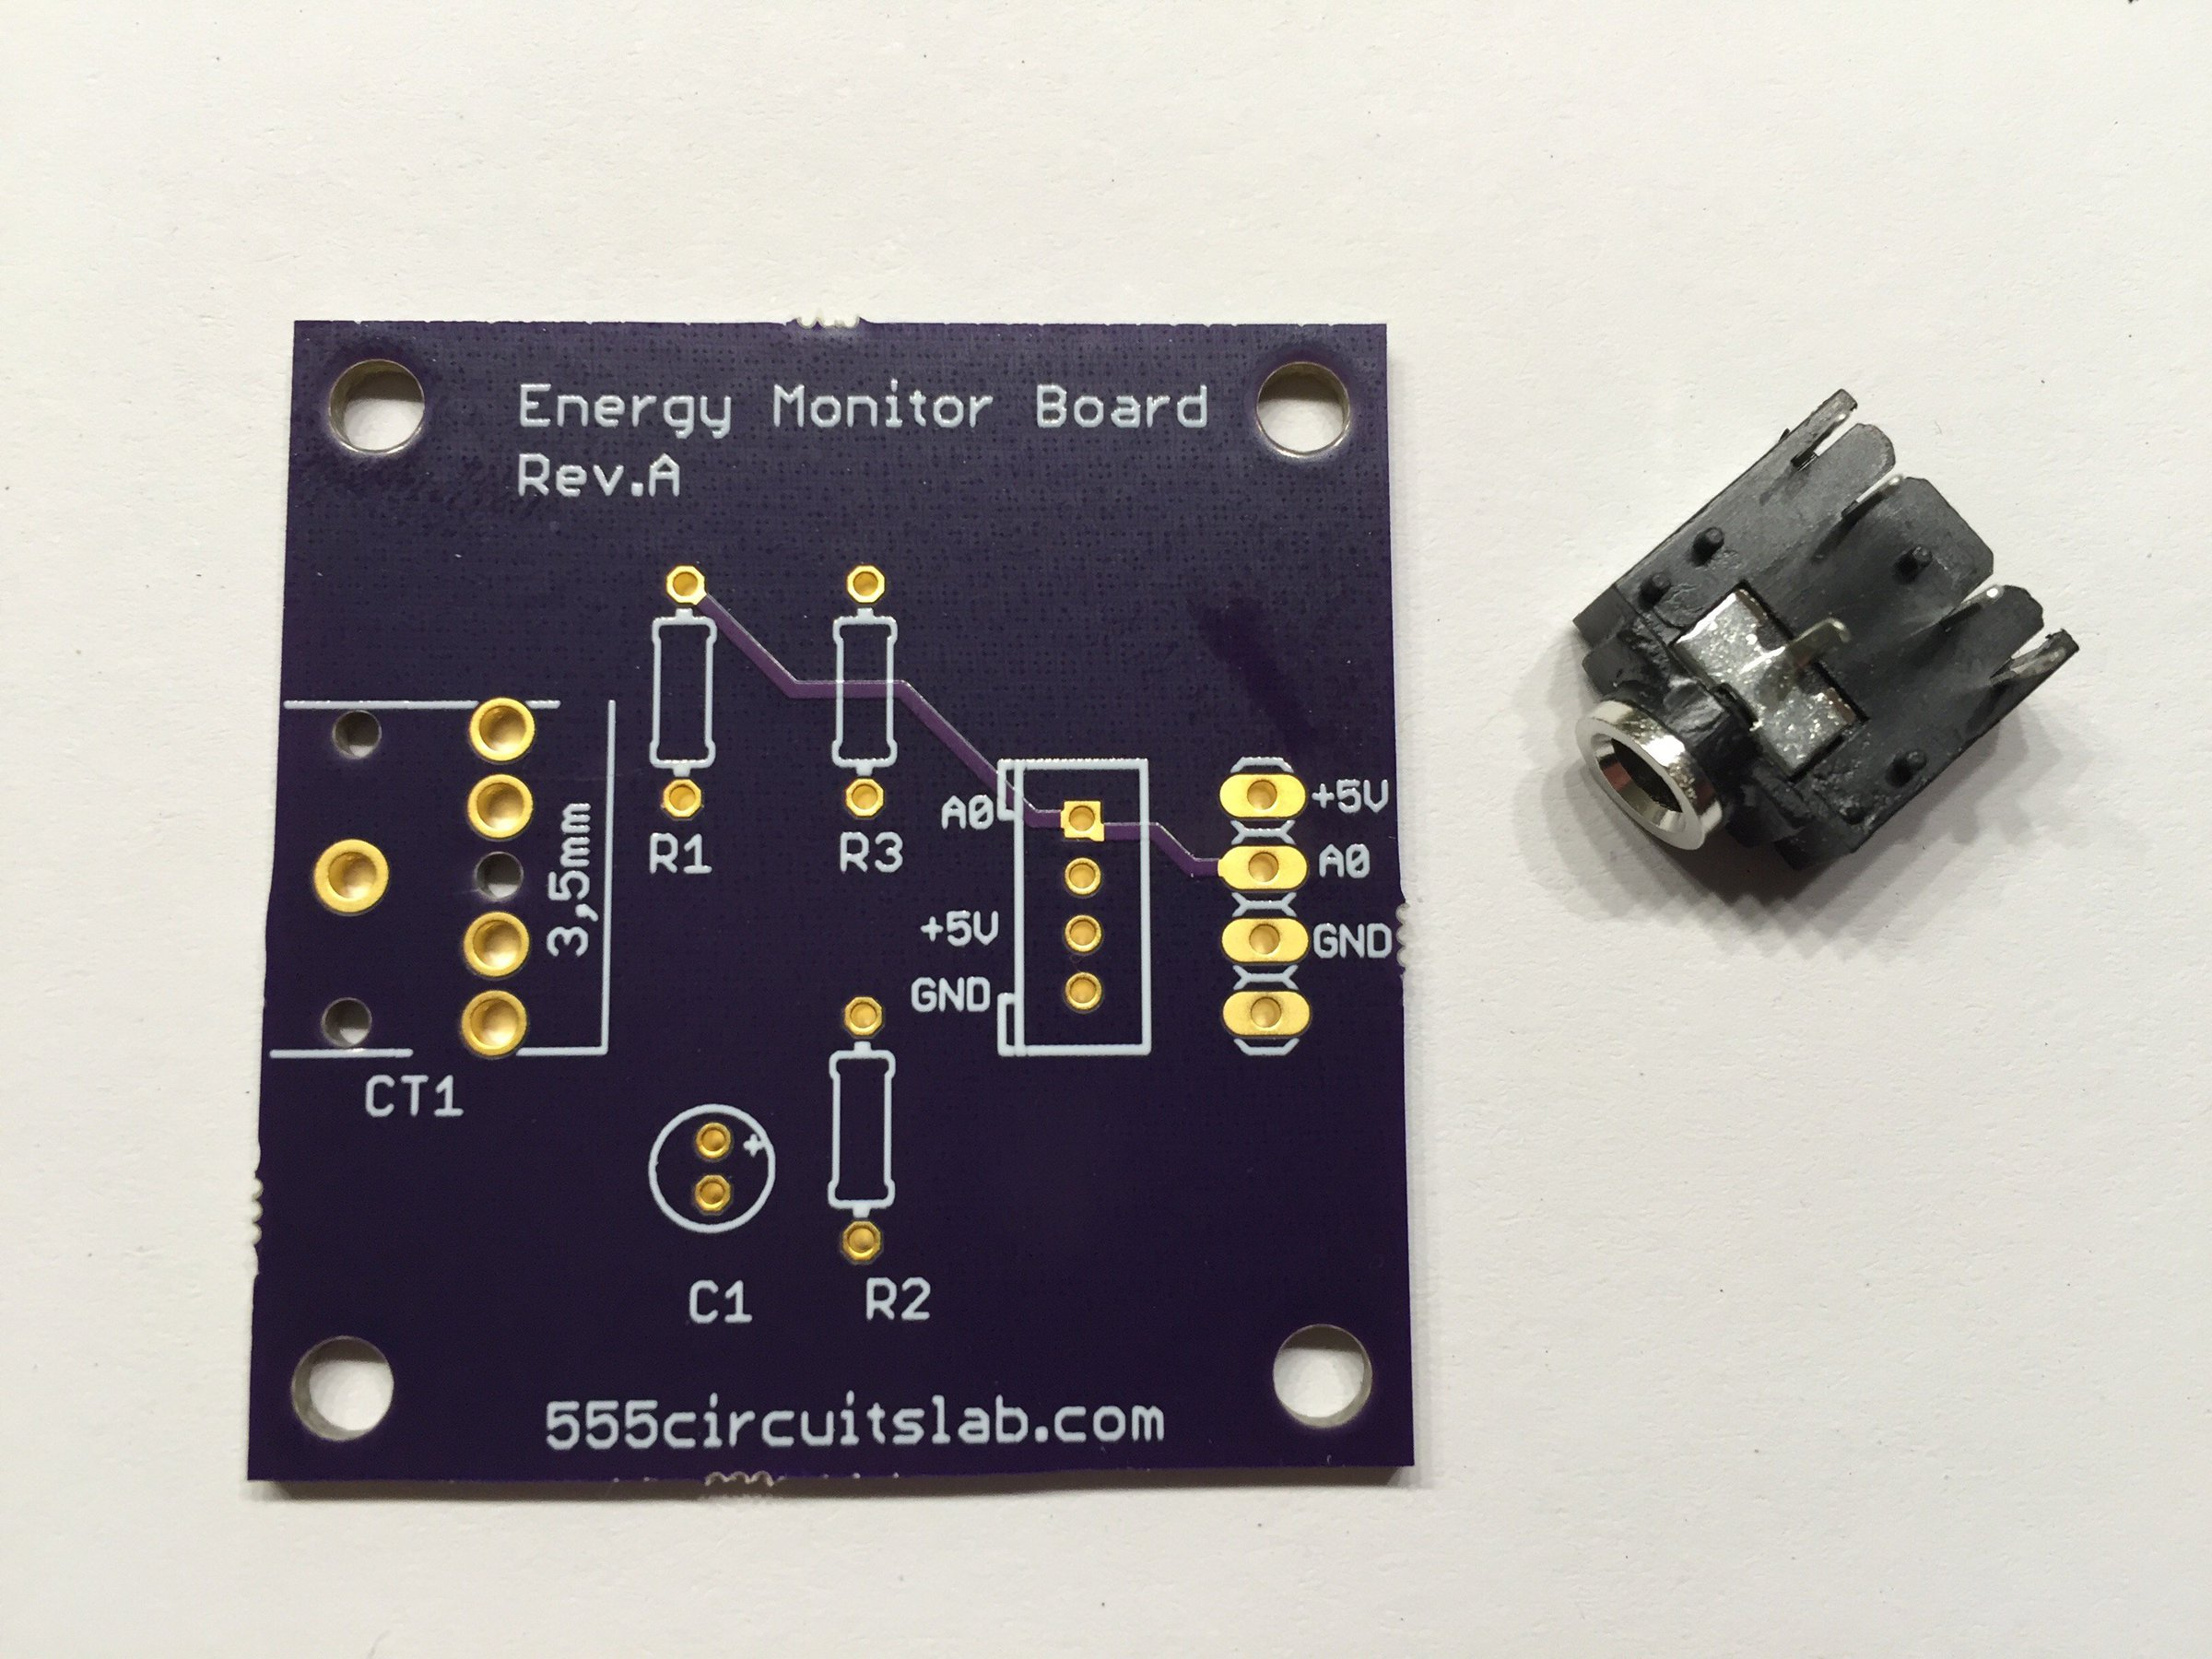 Energy Monitor Board Pcb Incl Stereo Jack From Arduinopraxis On Wiring 1